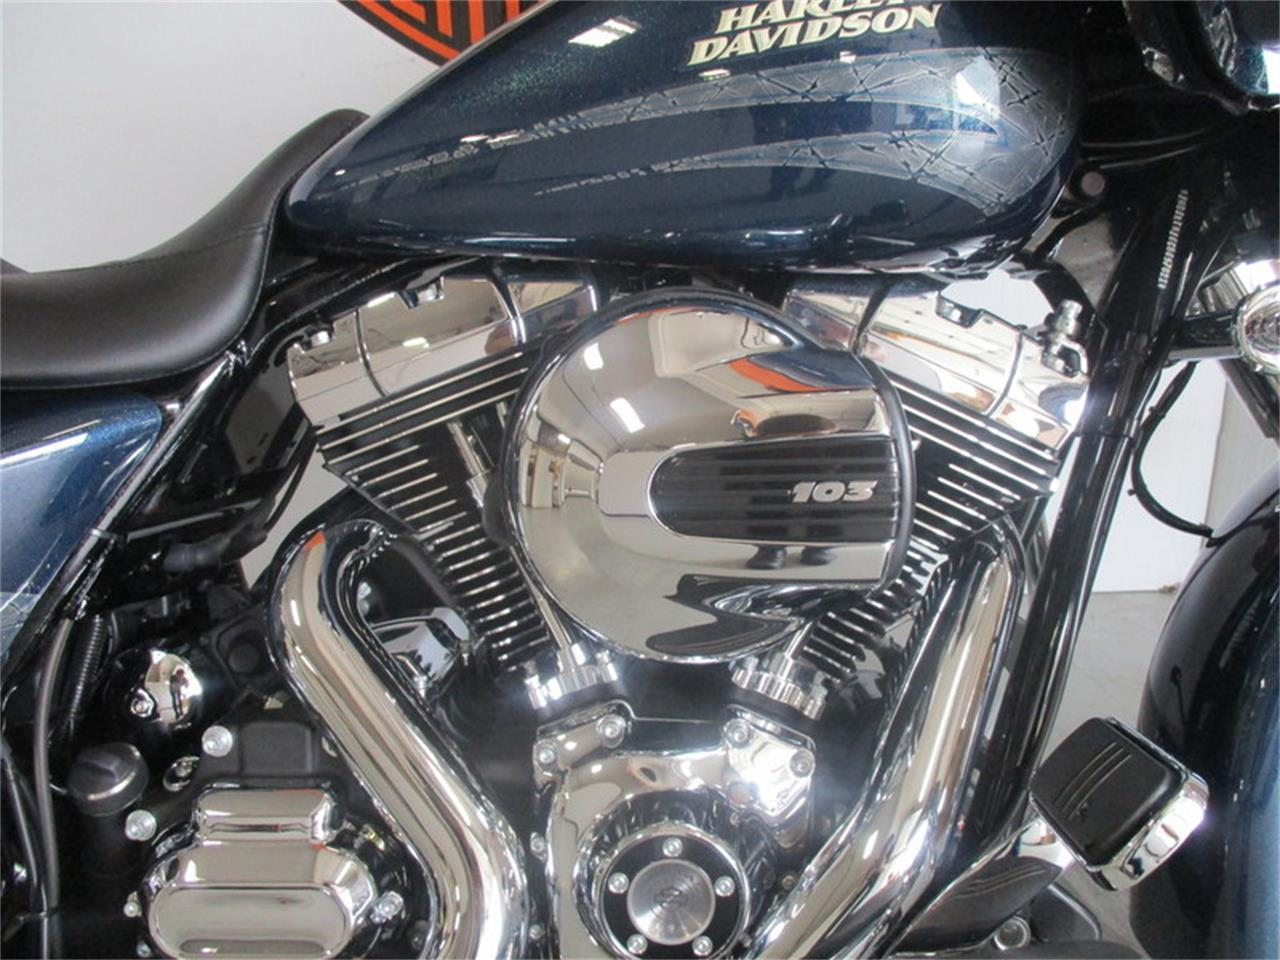 Large Picture of '16 FLTRXS - Road Glide® Special located in Wisconsin Offered by Suburban Motors, Inc. - M9FJ